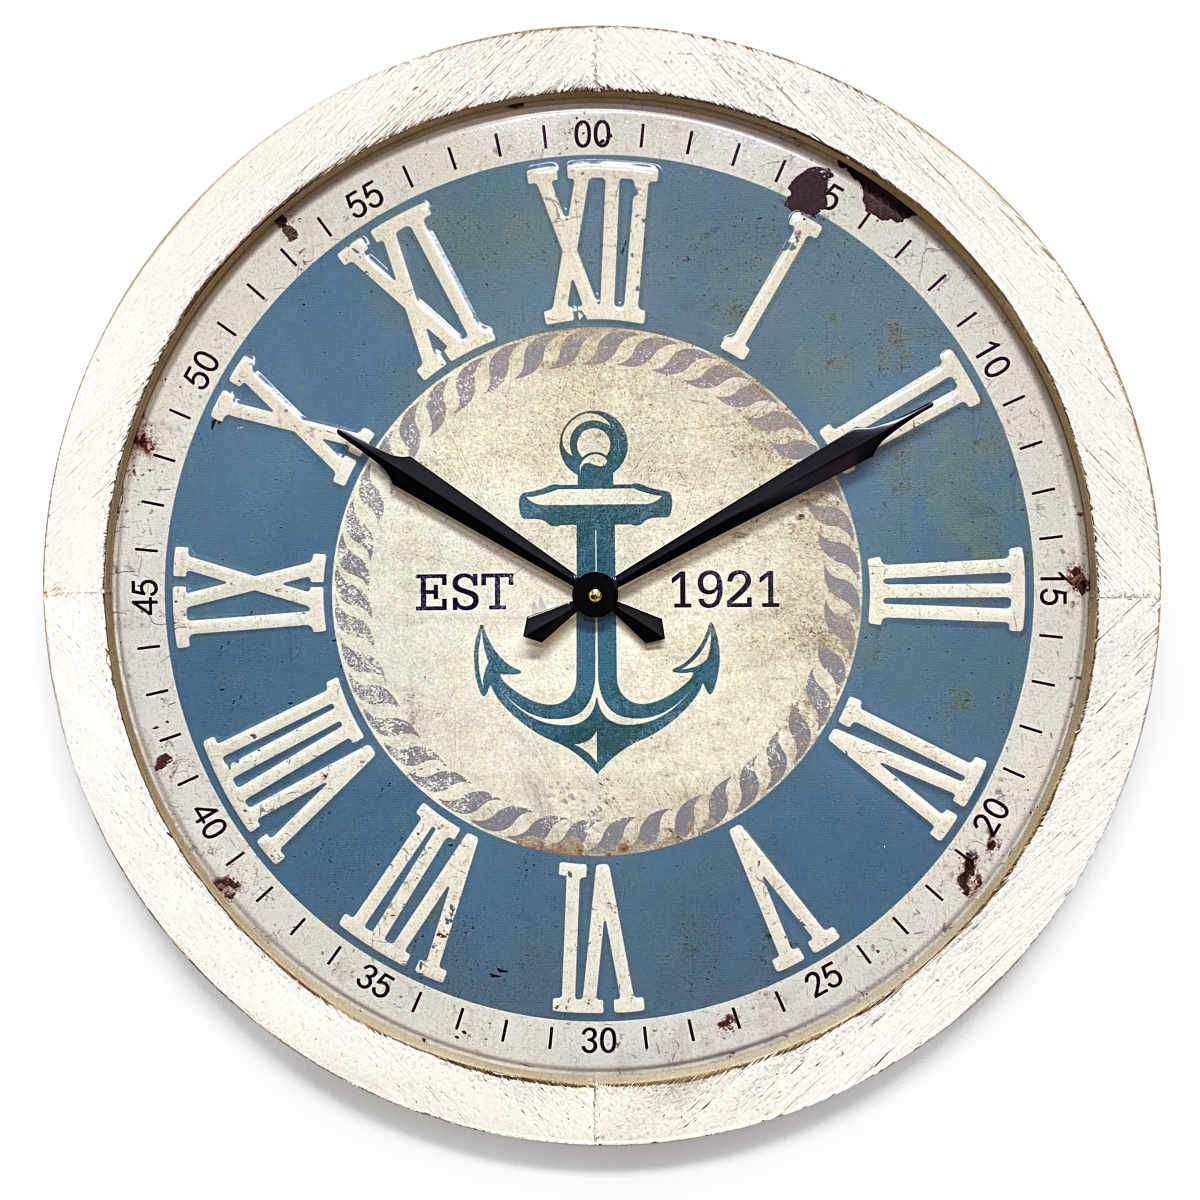 Victory Anchor Stamped Iron Wood Frame Wall Clock 60cm CHH-993 1